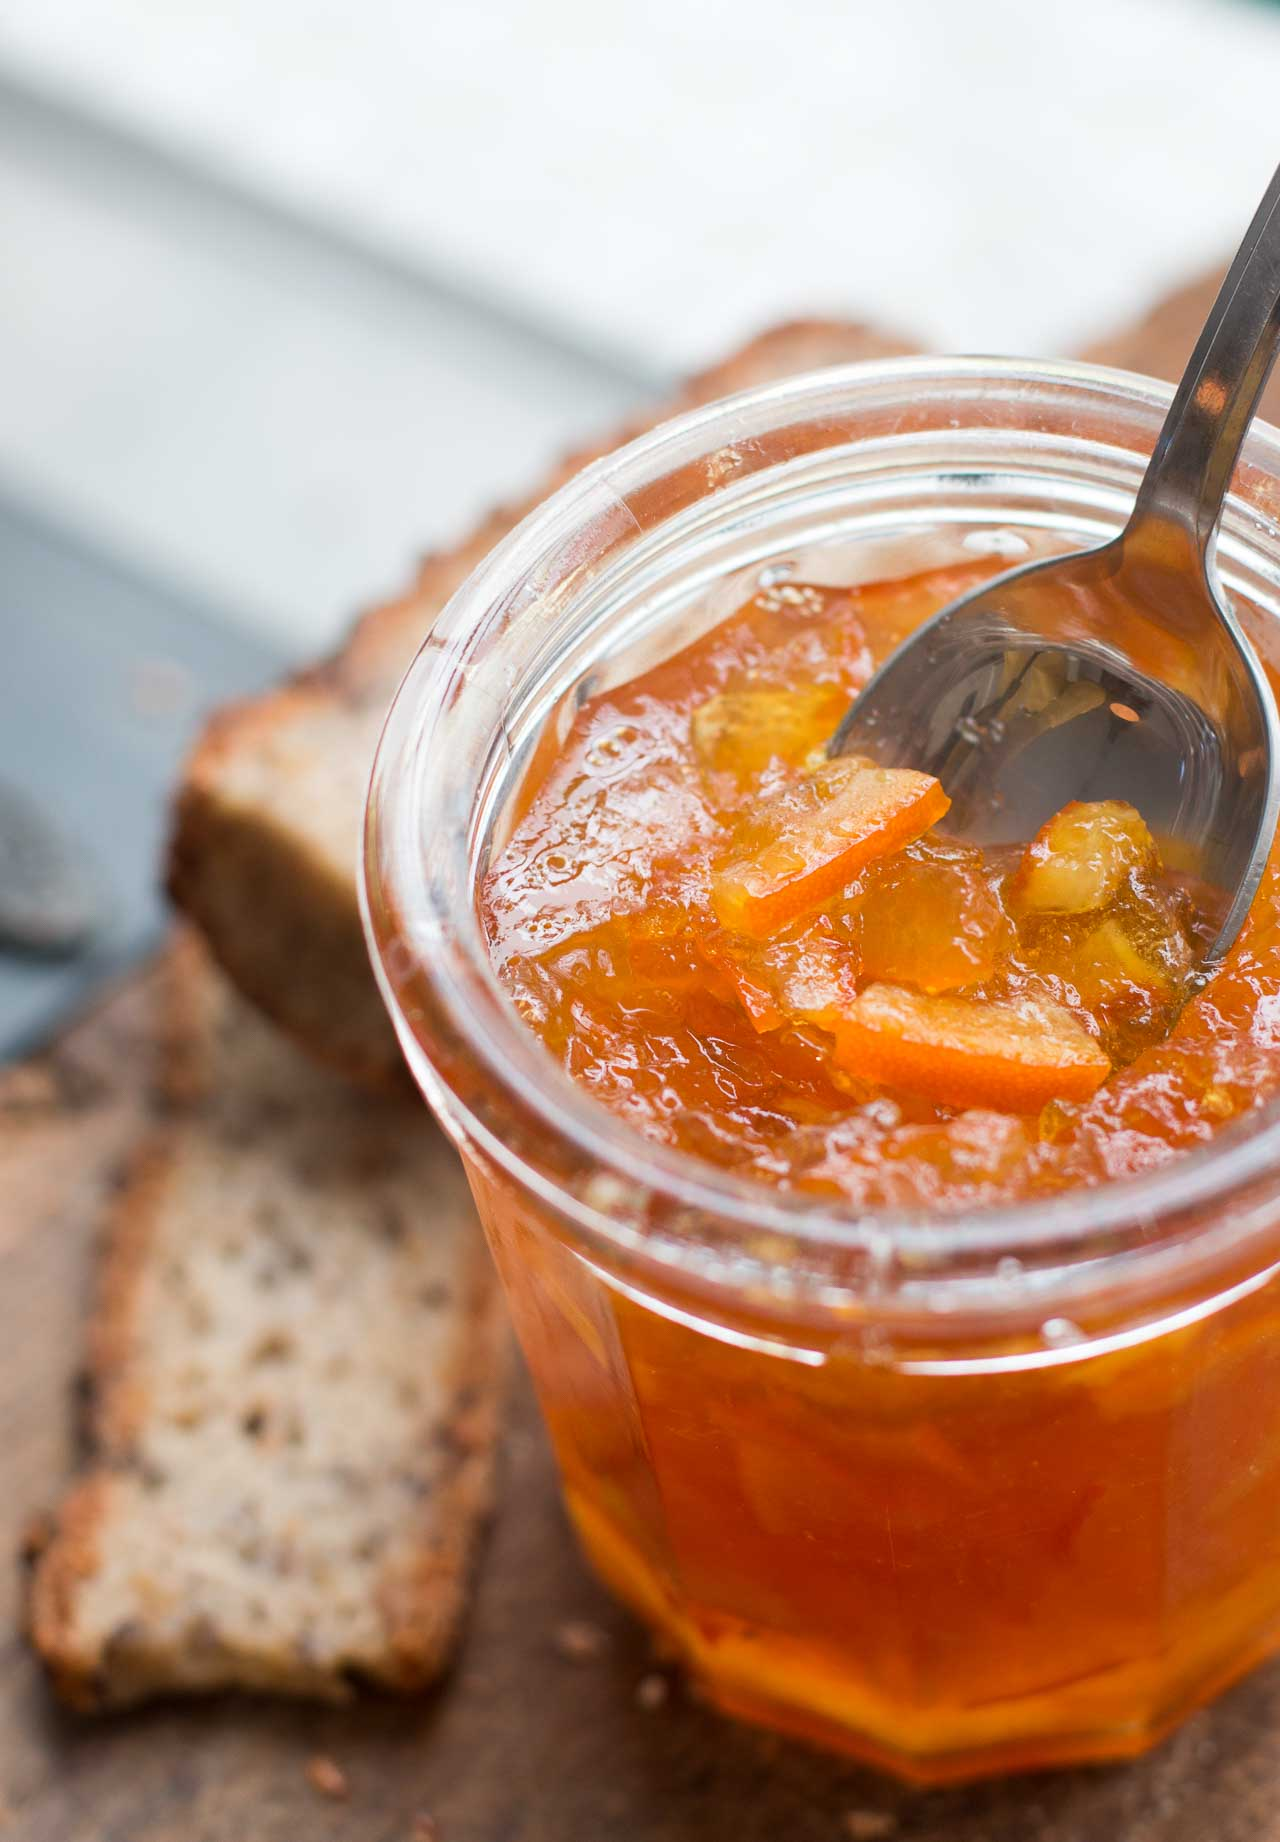 Delicious Seville orange marmalade using tart oranges.